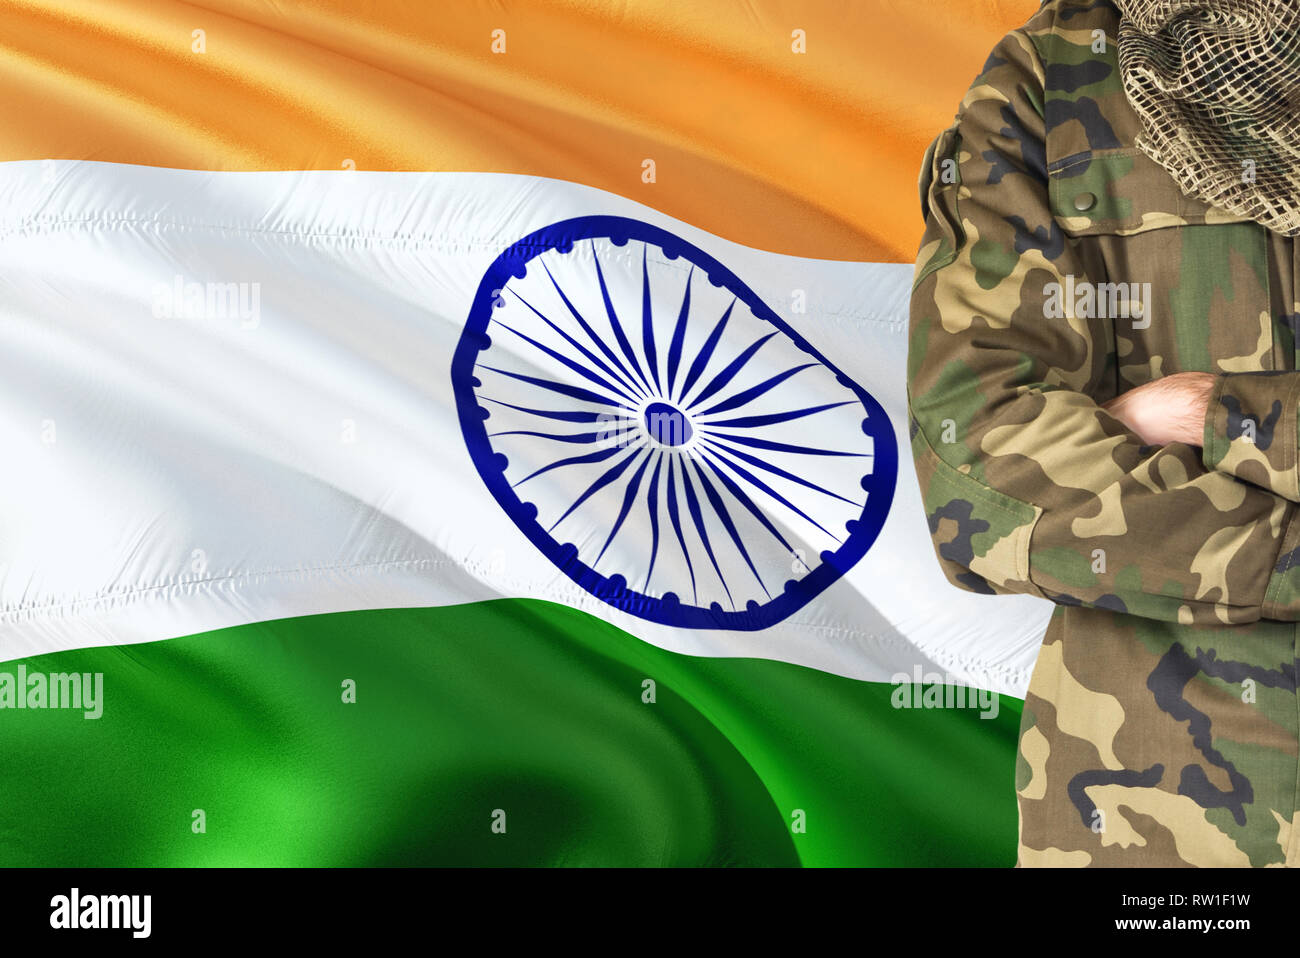 Crossed Arms Indian Soldier With National Waving Flag On Background India Military Theme Stock Photo Alamy